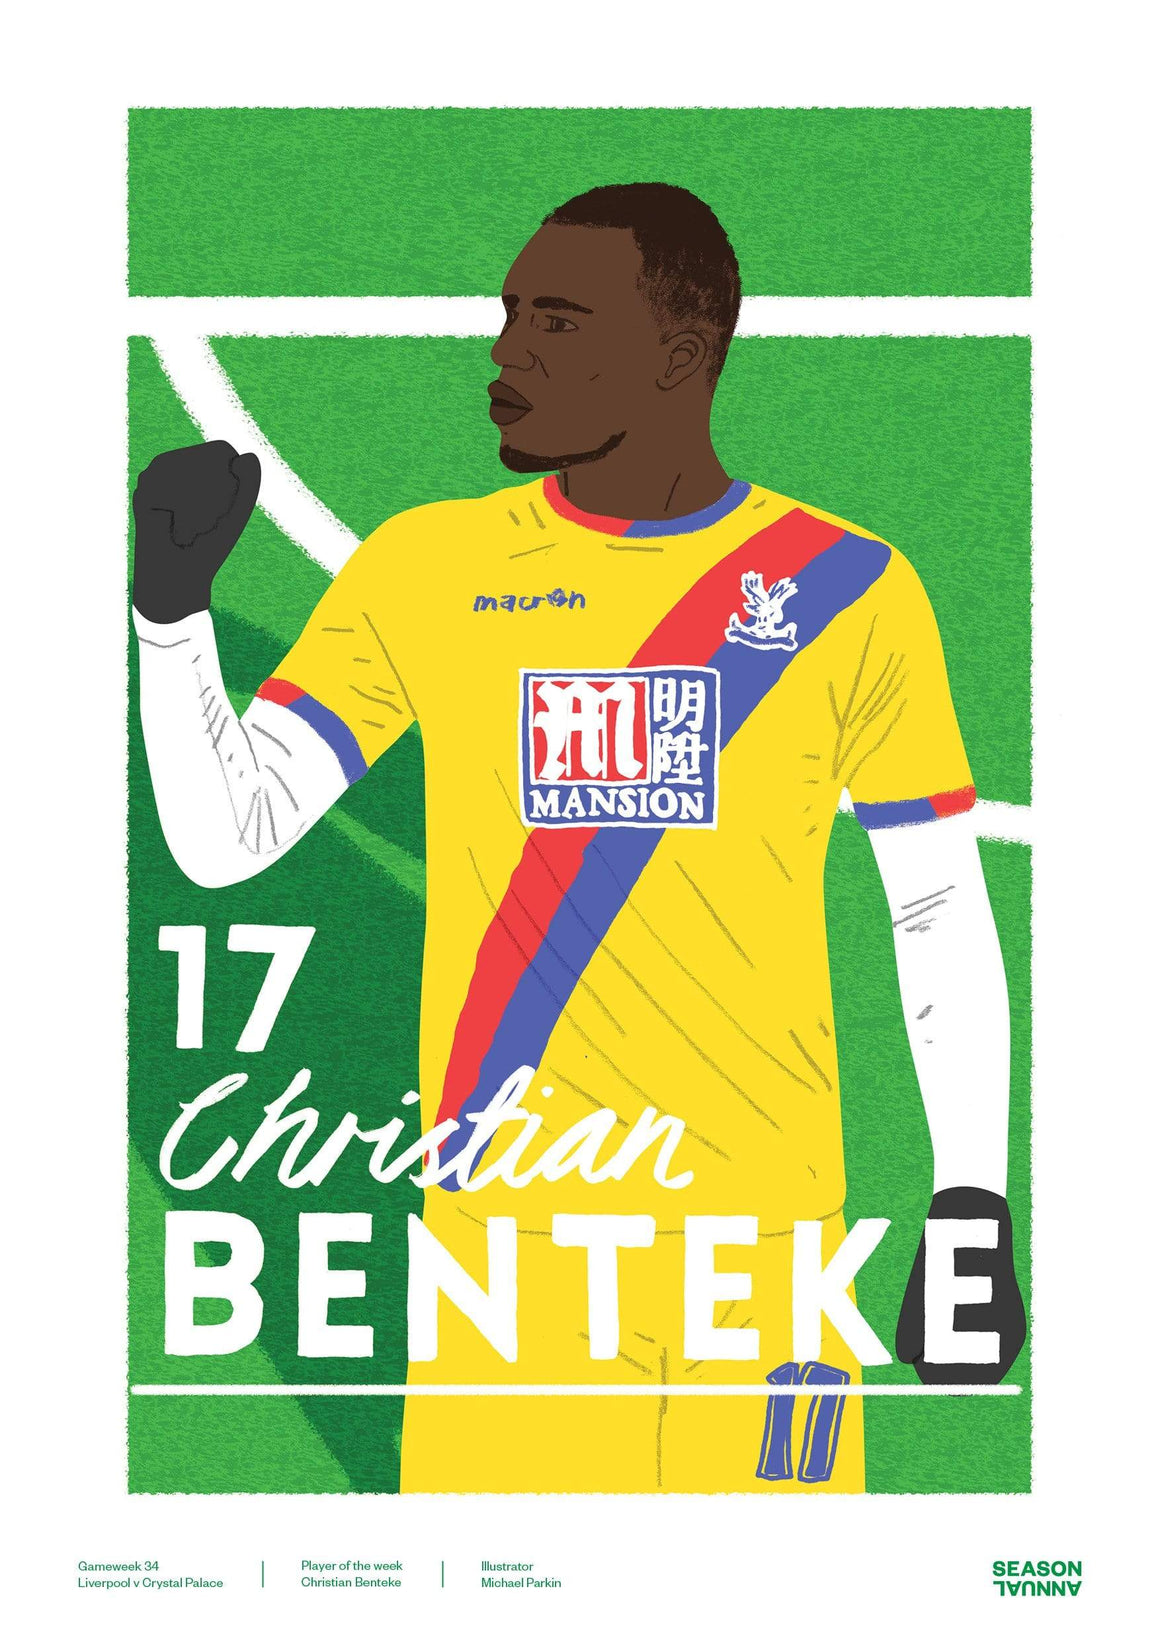 Season Annual A3 poster of Christian Benteke of Crystal Palace